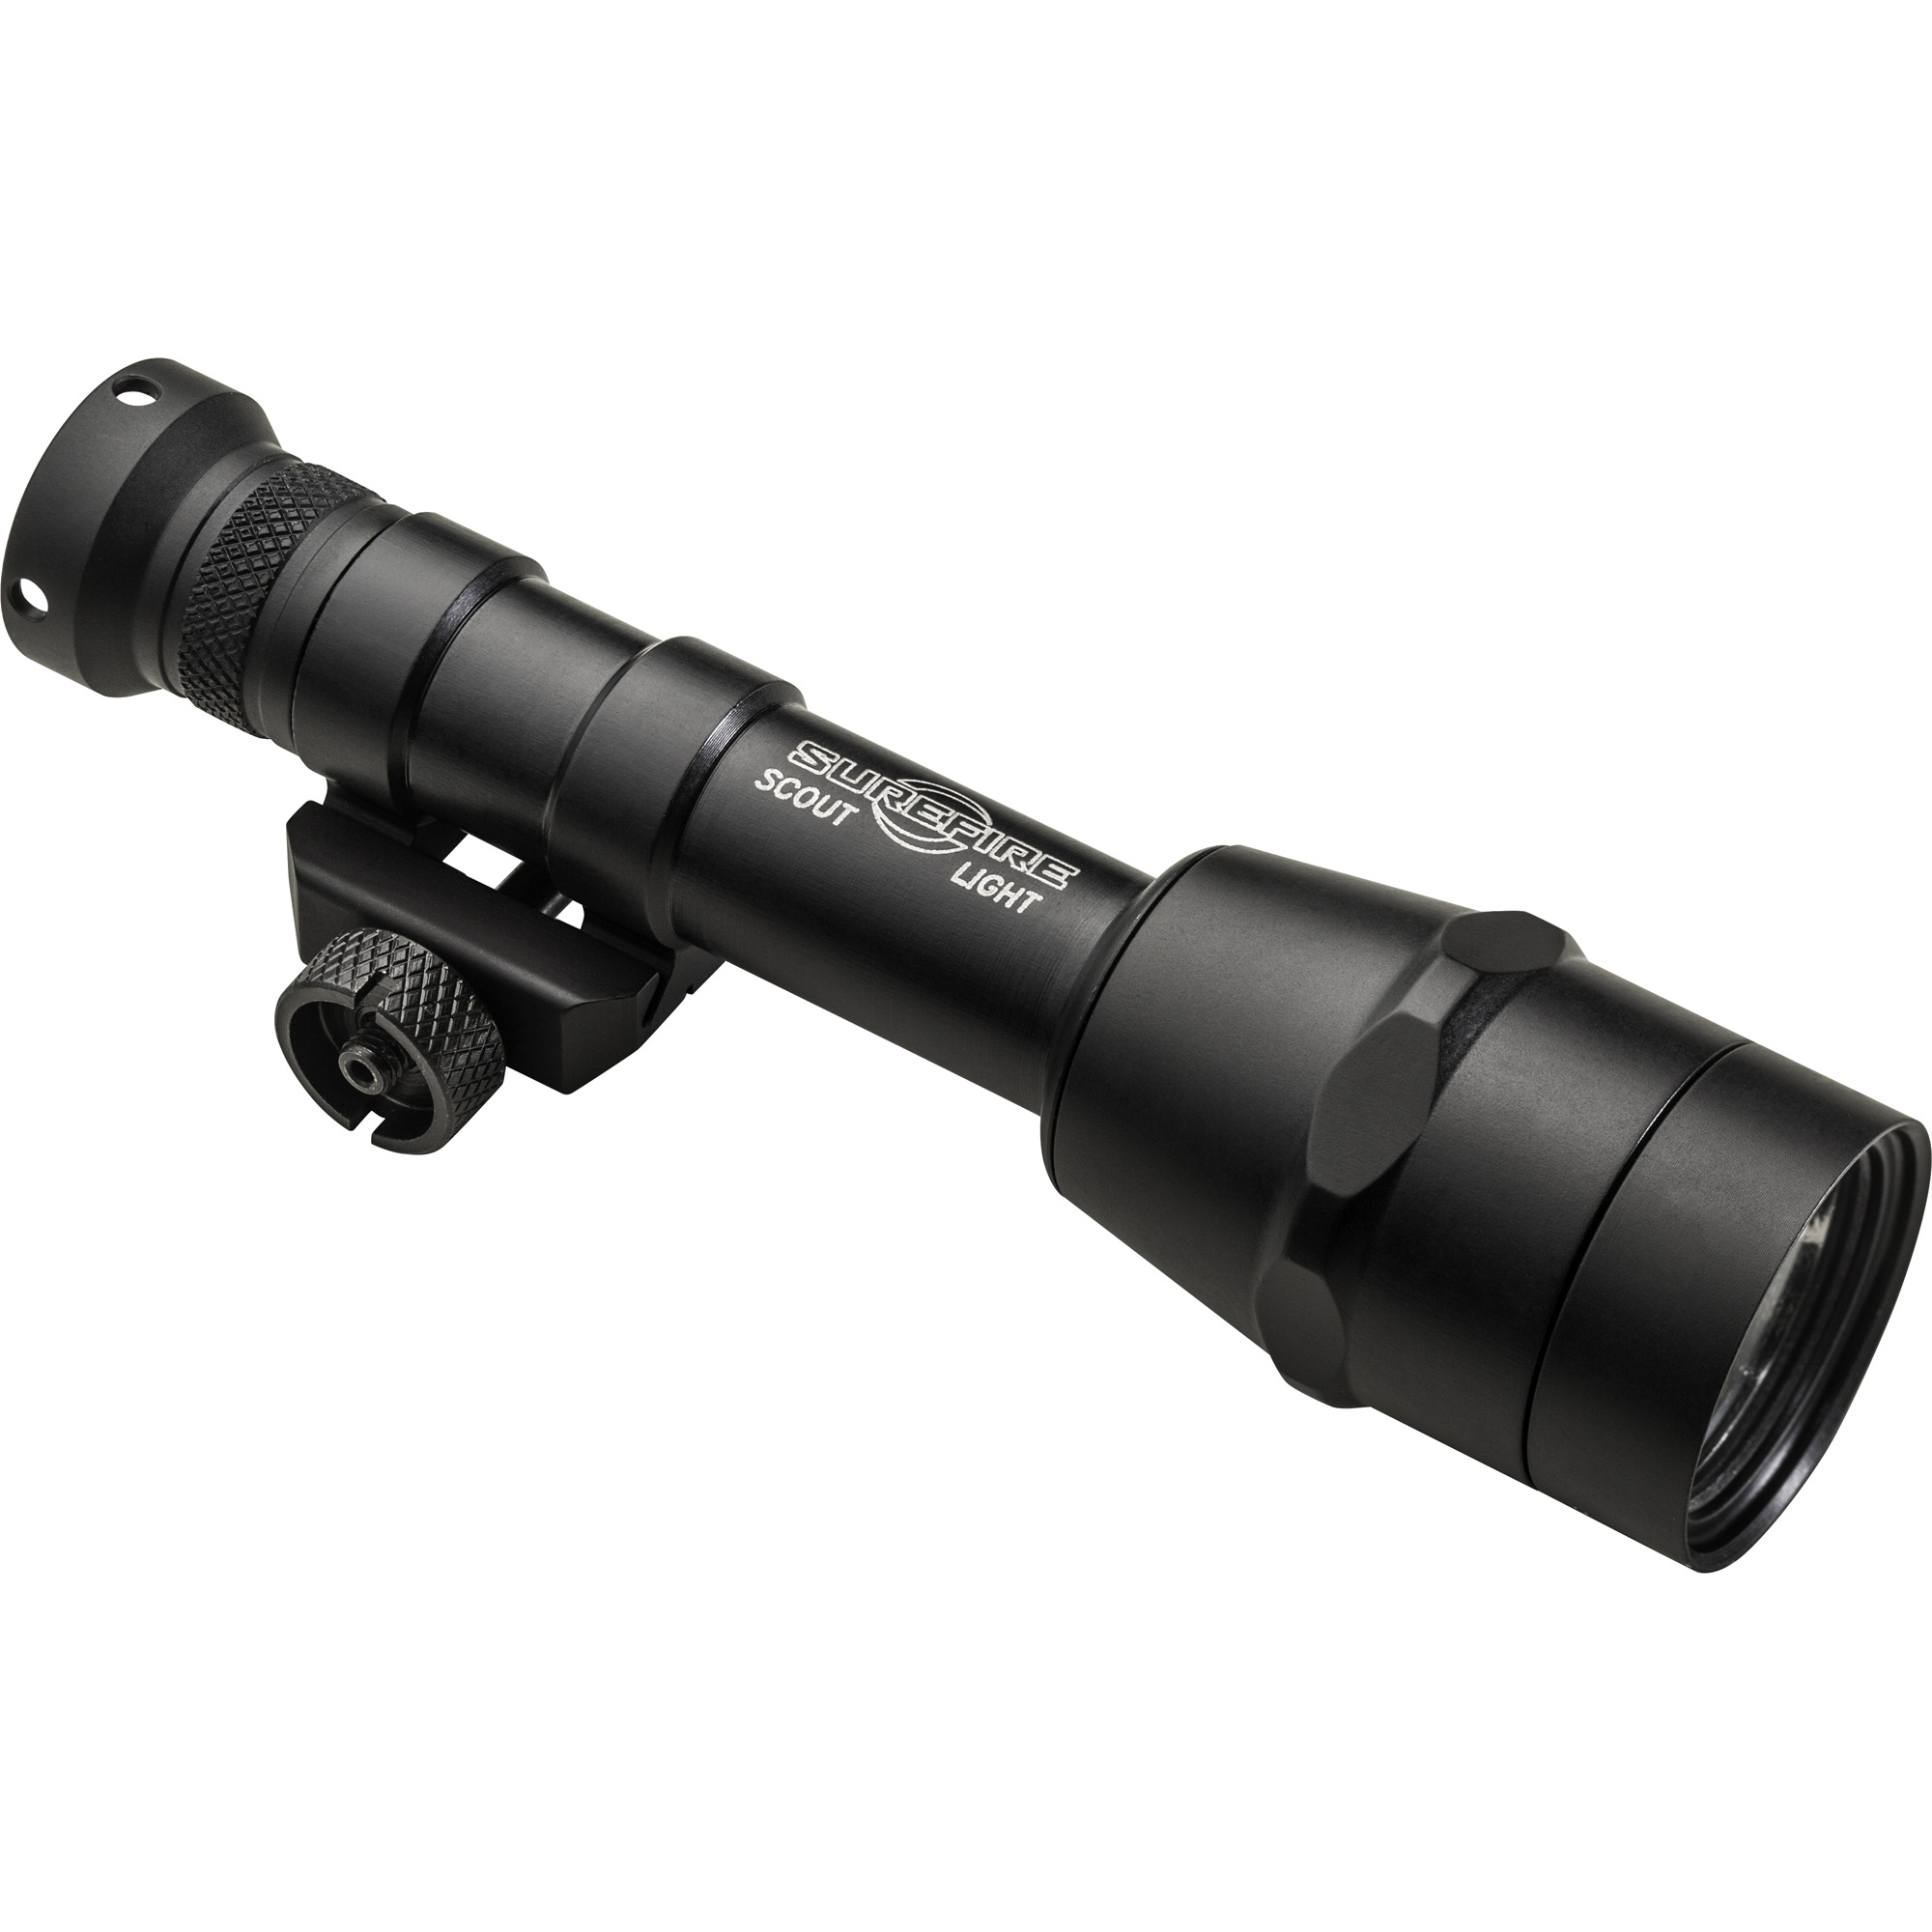 """The revolutionary SureFire M600IB is the most sophisticated"""" most innovative member of our best-selling Scout Light Family. It utilizes SureFire's proprietary IntelliBeam(TM) Technology-an intelligent sensor and microprocessor-based system that continuously evaluates the environment where the beam is aimed-to automatically adjust the light output to the optimal level"""" between 100 and 600 lumens"""" faster than the human eye can detect. So you always get just the right amount of light for the task at hand"""" based on your surroundings! Its high-performance LED and parabolic reflector create a smooth"""" highly useful beam with far-reaching center and significant surround light for maintaining situational awareness no matter to which output level the M600IB's beam is automatically set. Simply press the tail cap click switch for momentary light activation or click the switch for constant-on mode-optional remote switching is also available. Like all Scout Light models"""" the M600IB is constructed of Mil-Spec hard-anodized aluminum and O-ring and gasket sealed"""" so it can take most anything you can dish out. At less than six inches long and just over six ounces in weight"""" it won't eat up a lot of rail space or weigh down your weapon"""" either. It attaches quickly and securely via its thumbscrew mount to any MIL-STD 1913 rail. For cutting-edge technology that delivers just the right amount of light"""" and Scout Light reliability that won't let you down"""" there's no beating the M600IB!"""